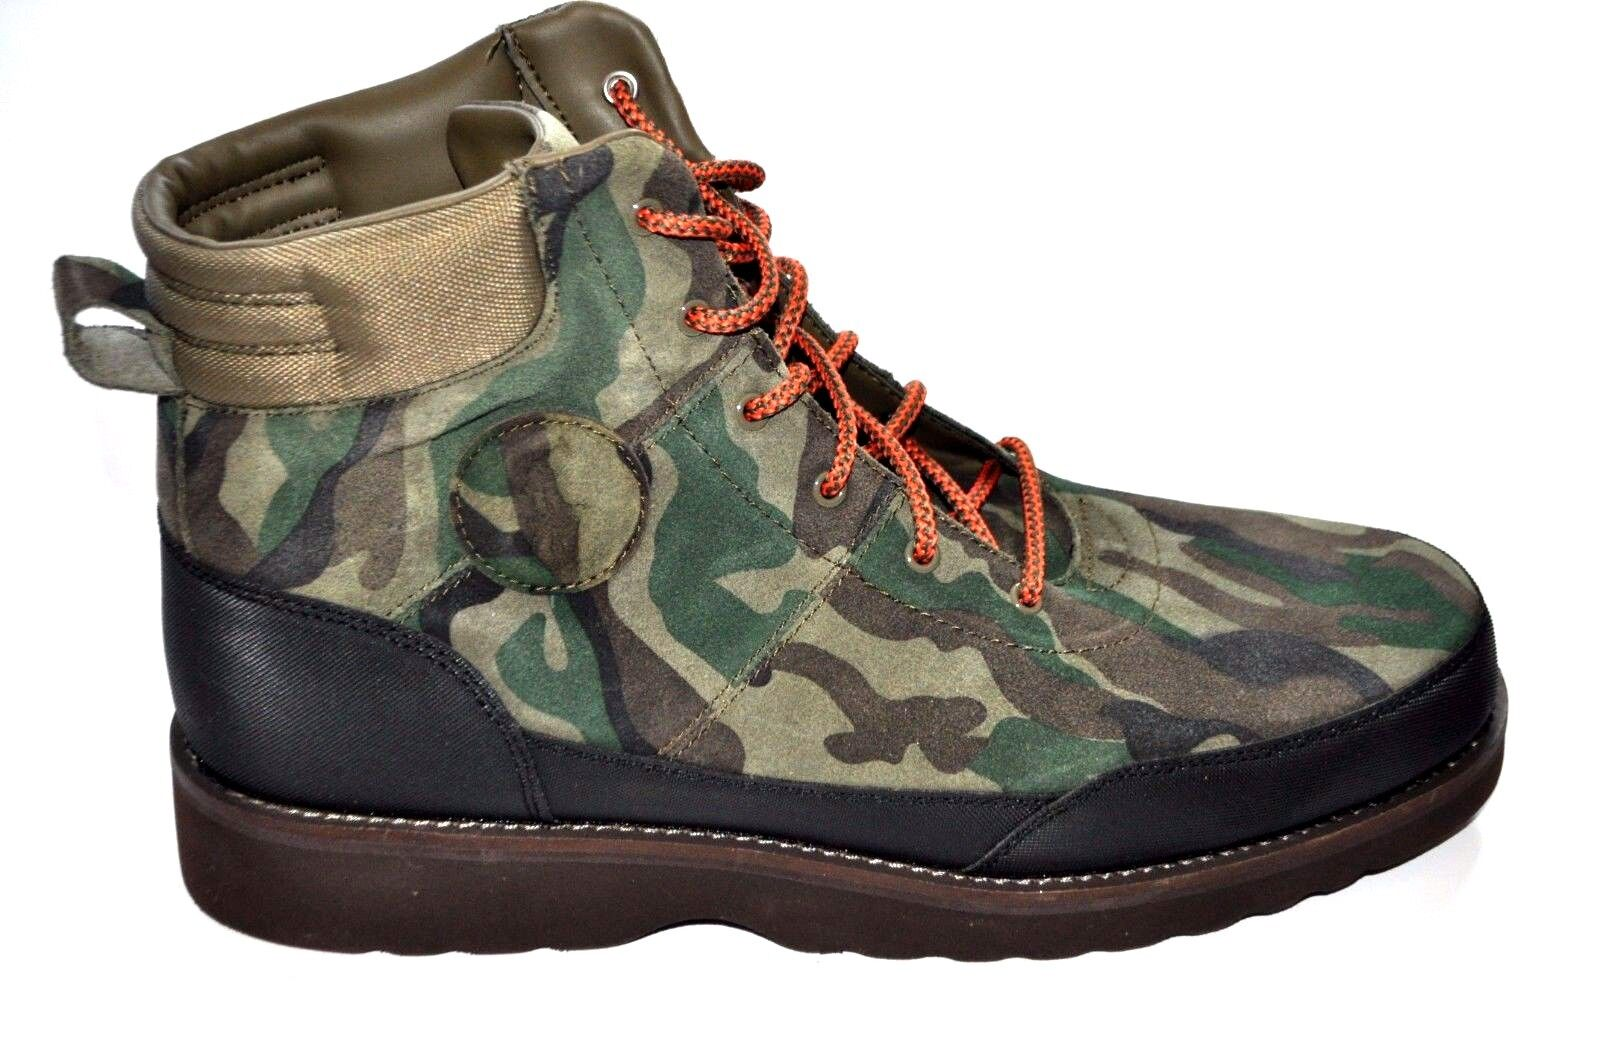 POLO RALPH LAUREN Men's BEARSTED CAMO BOOTS SUEDE ANKLE LEATHER HIKING 10.5